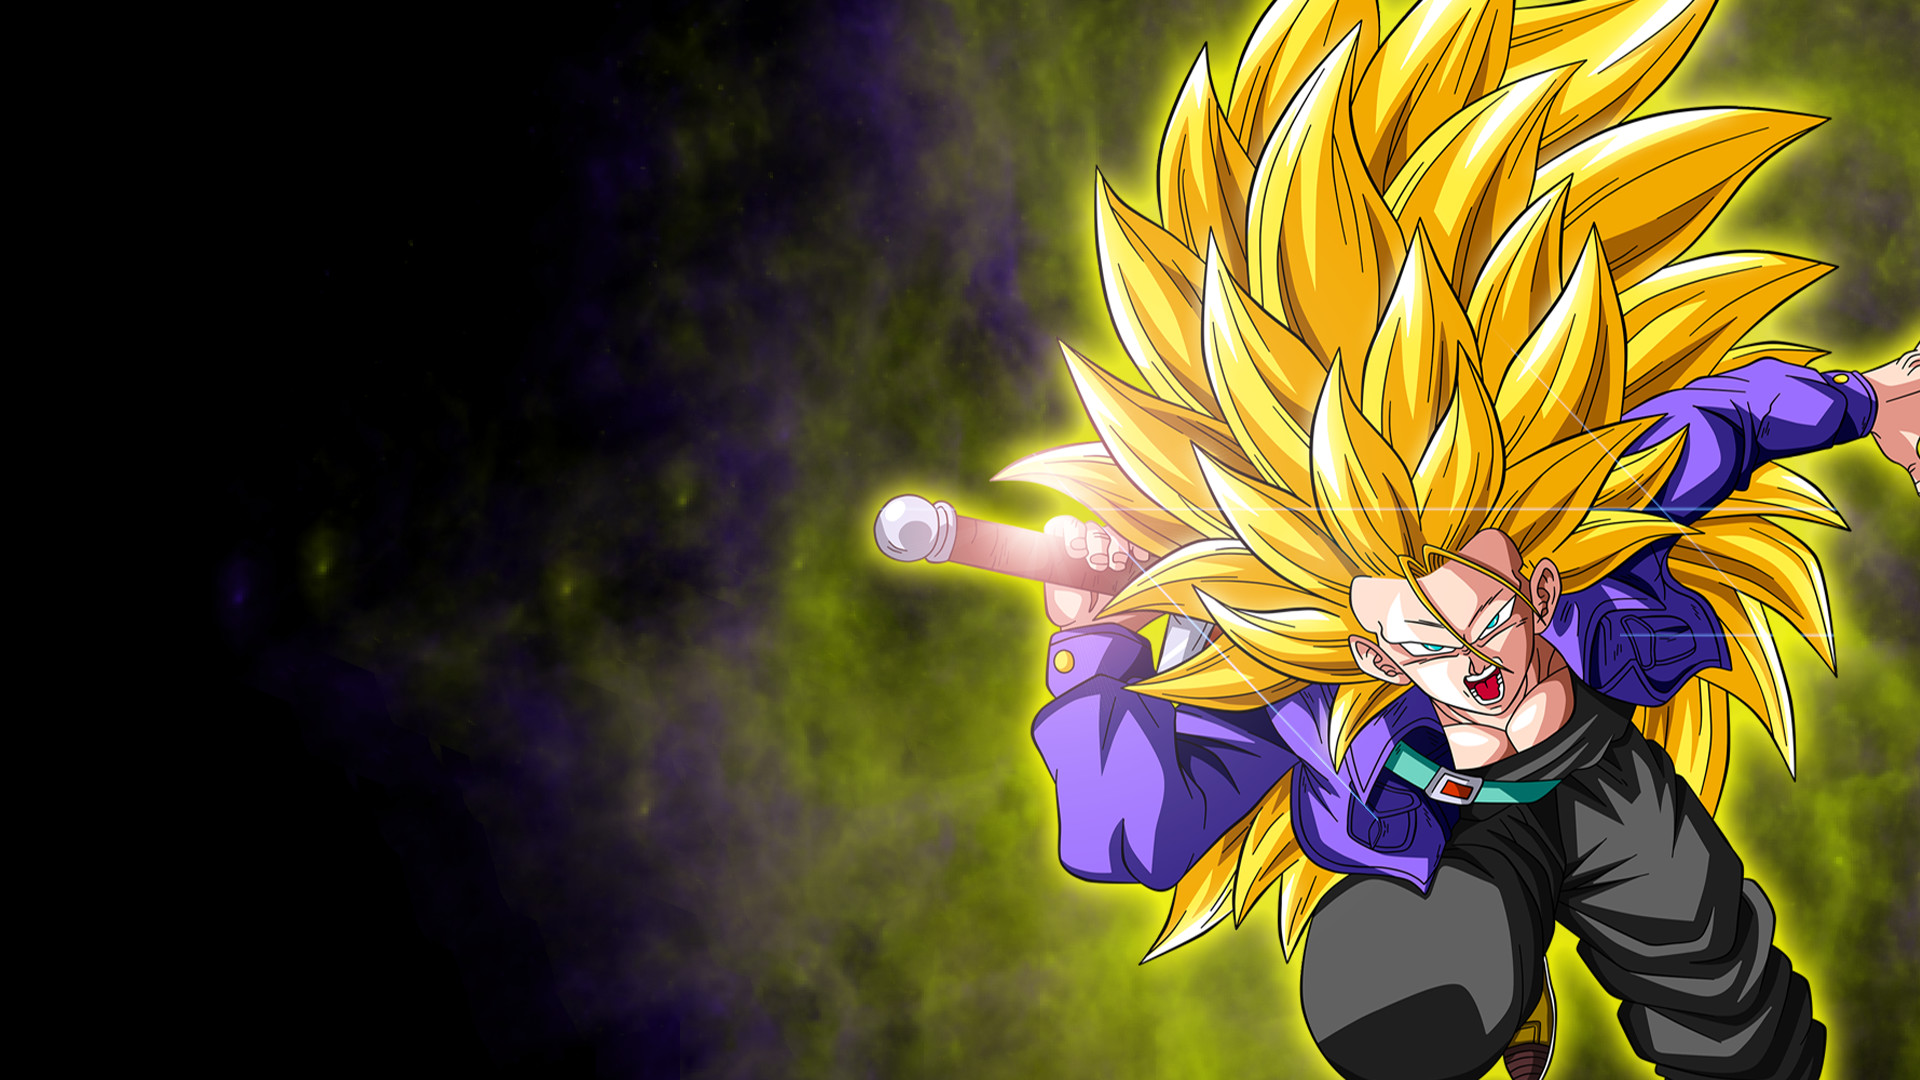 1920x1080 Wallpapers Super Saiyans Vs Freeza Myspace Backgrounds